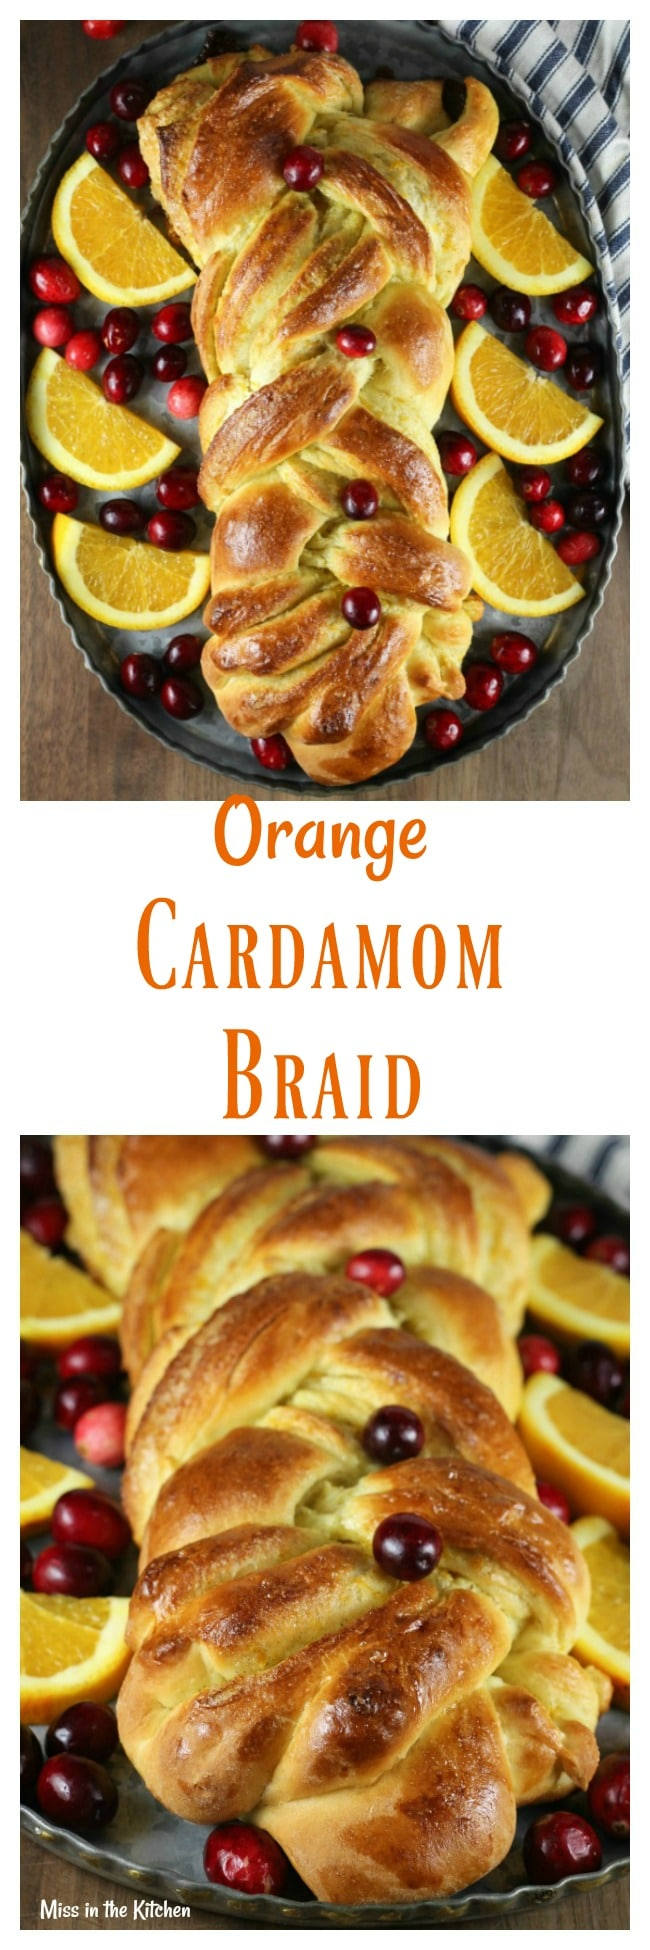 Orange Cardamom Braid Recipe from MissintheKitchen.com #ad @Redstaryeast #holiday #bread #orange